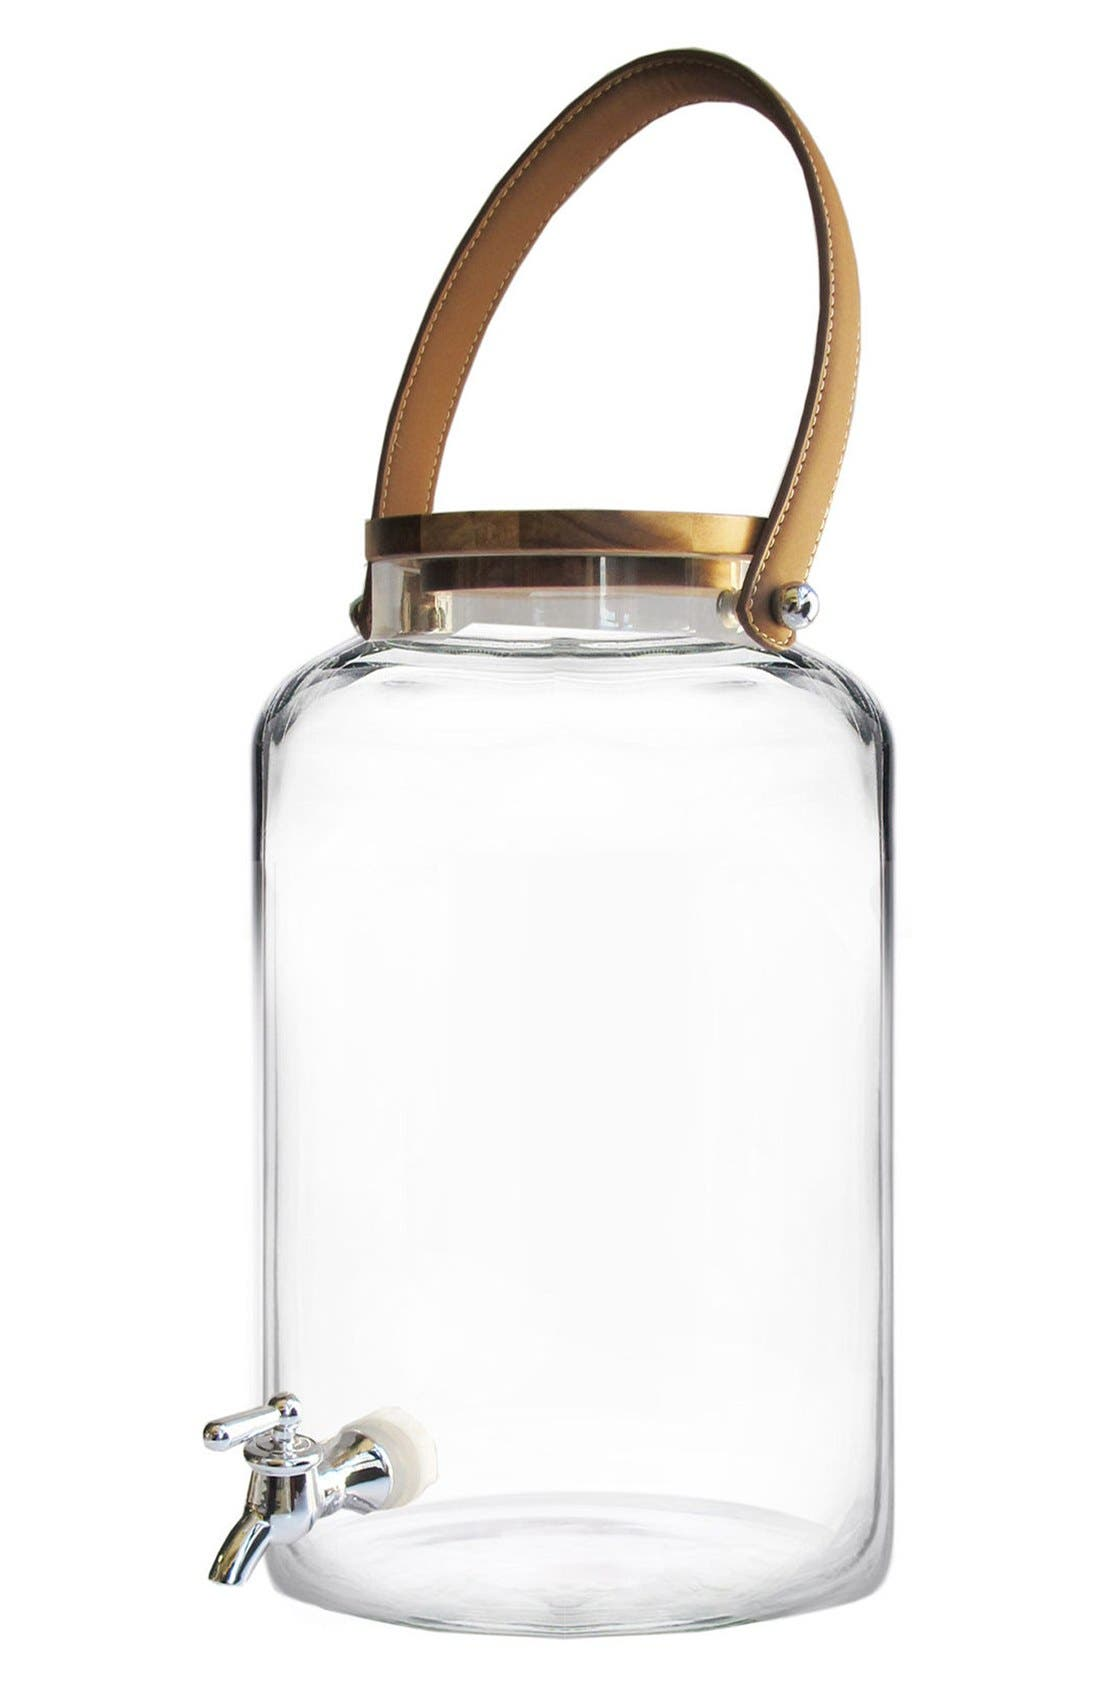 American Atelier Kent 2-Gallon Beverage Dispenser